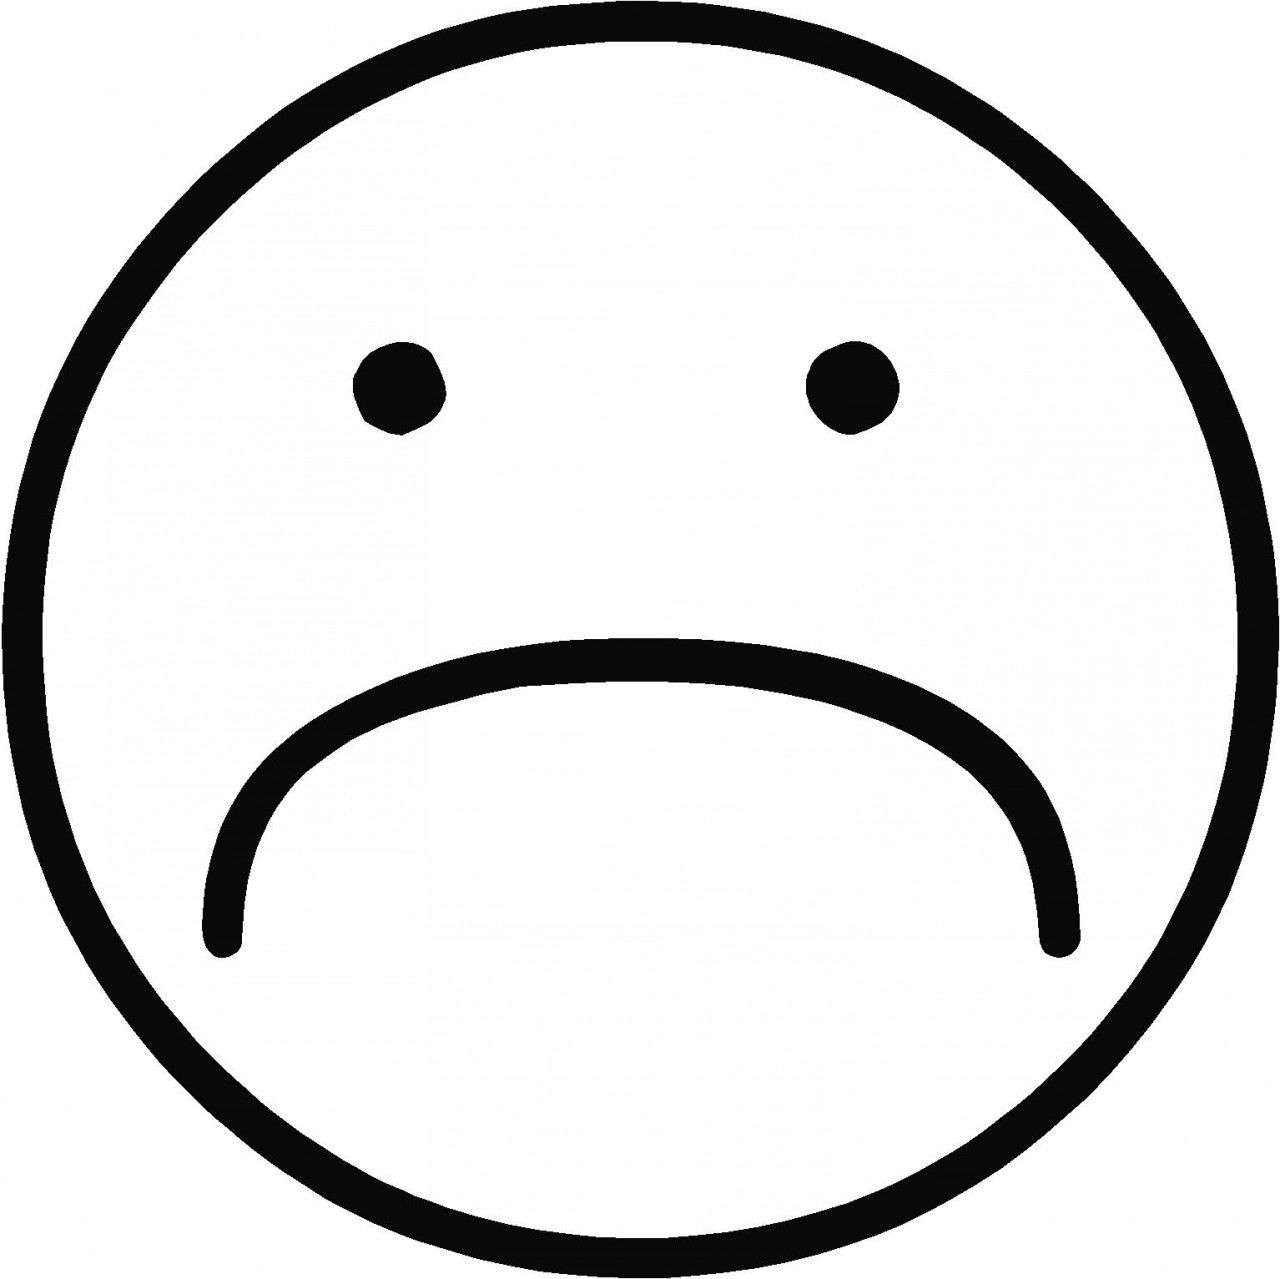 Sad face coloring page coloring pages pictures imagixs sad face coloring page coloring pages pictures imagixs clipart best clipart buycottarizona Gallery